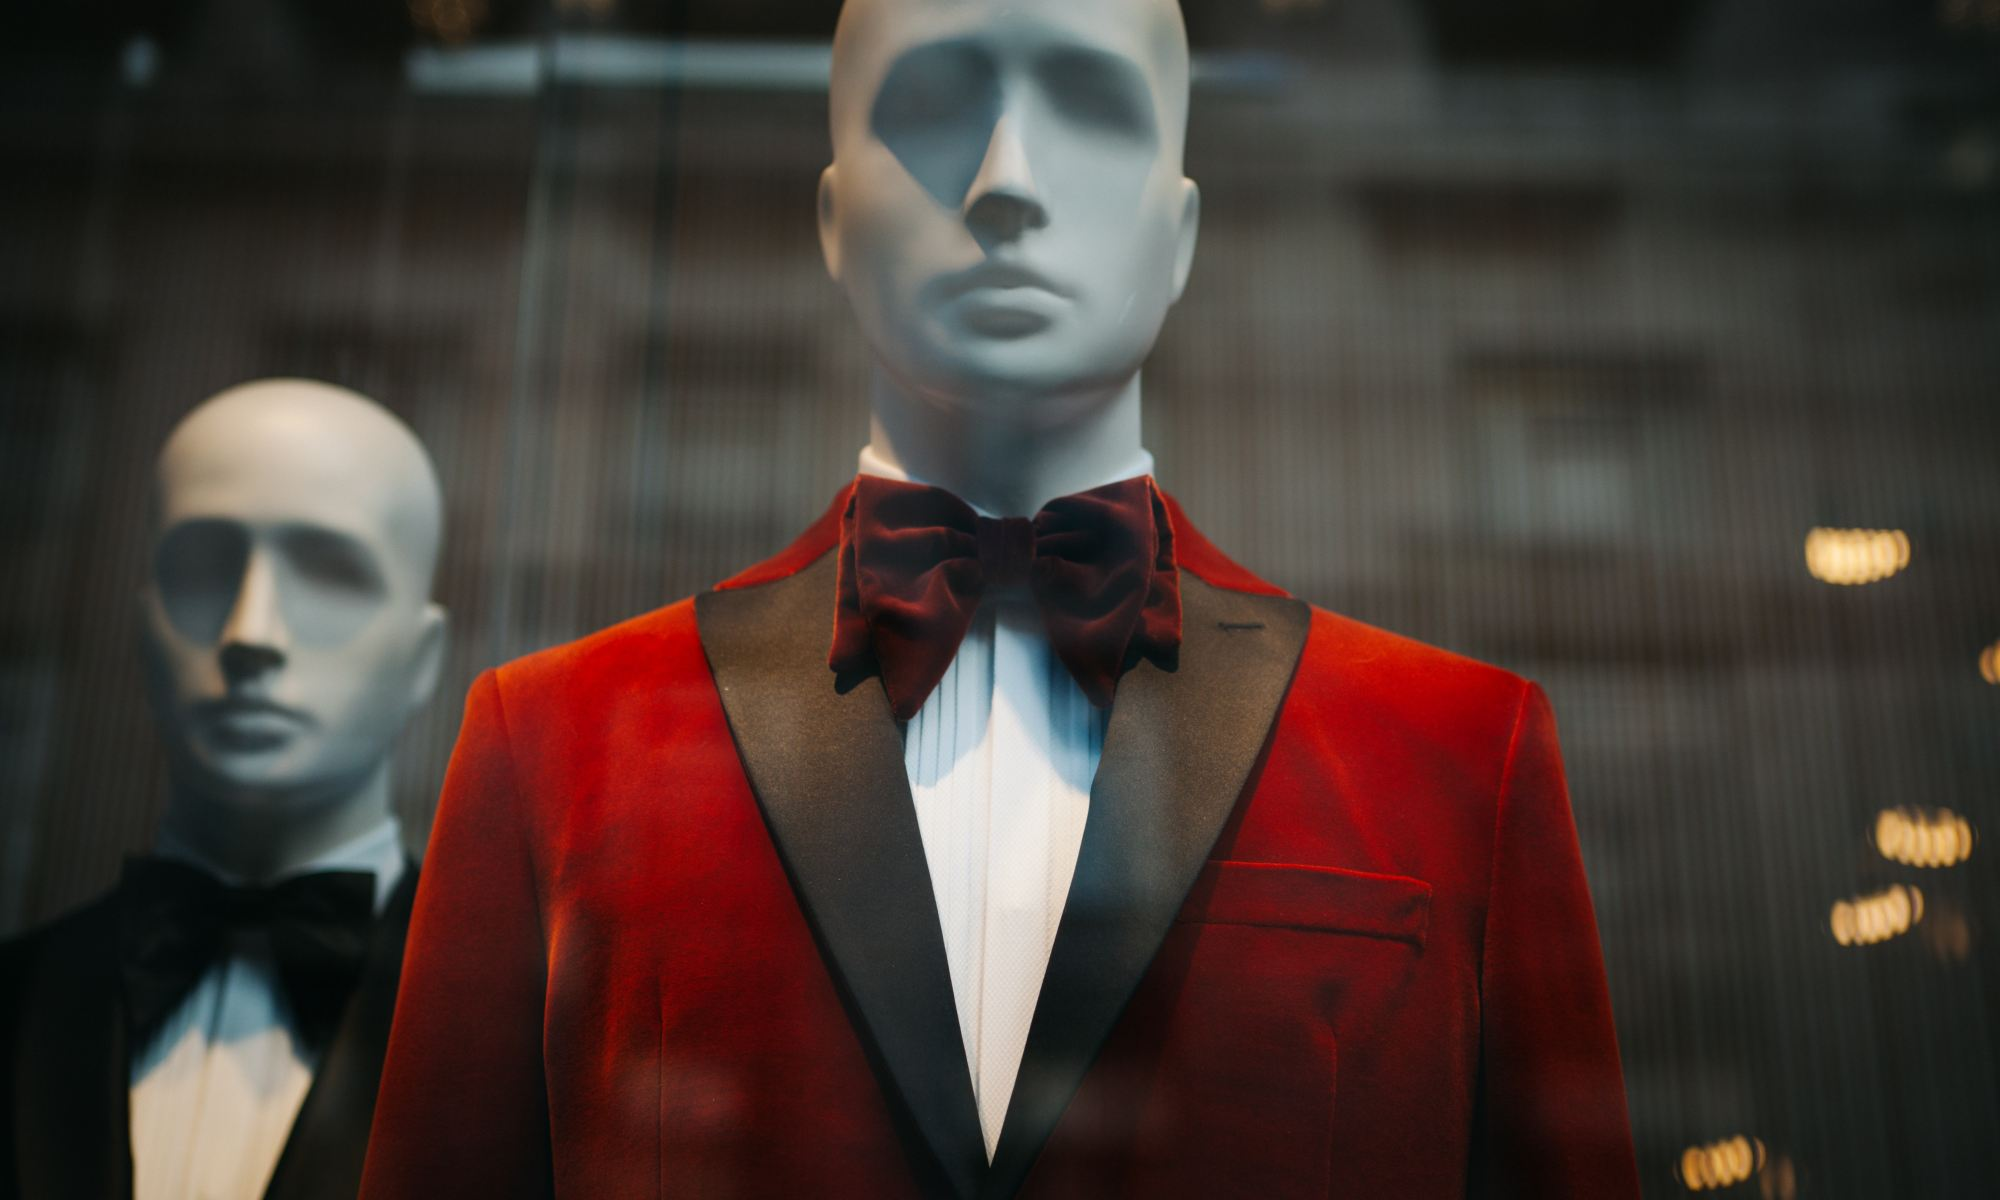 Mannequin wearing red bowtie and suit